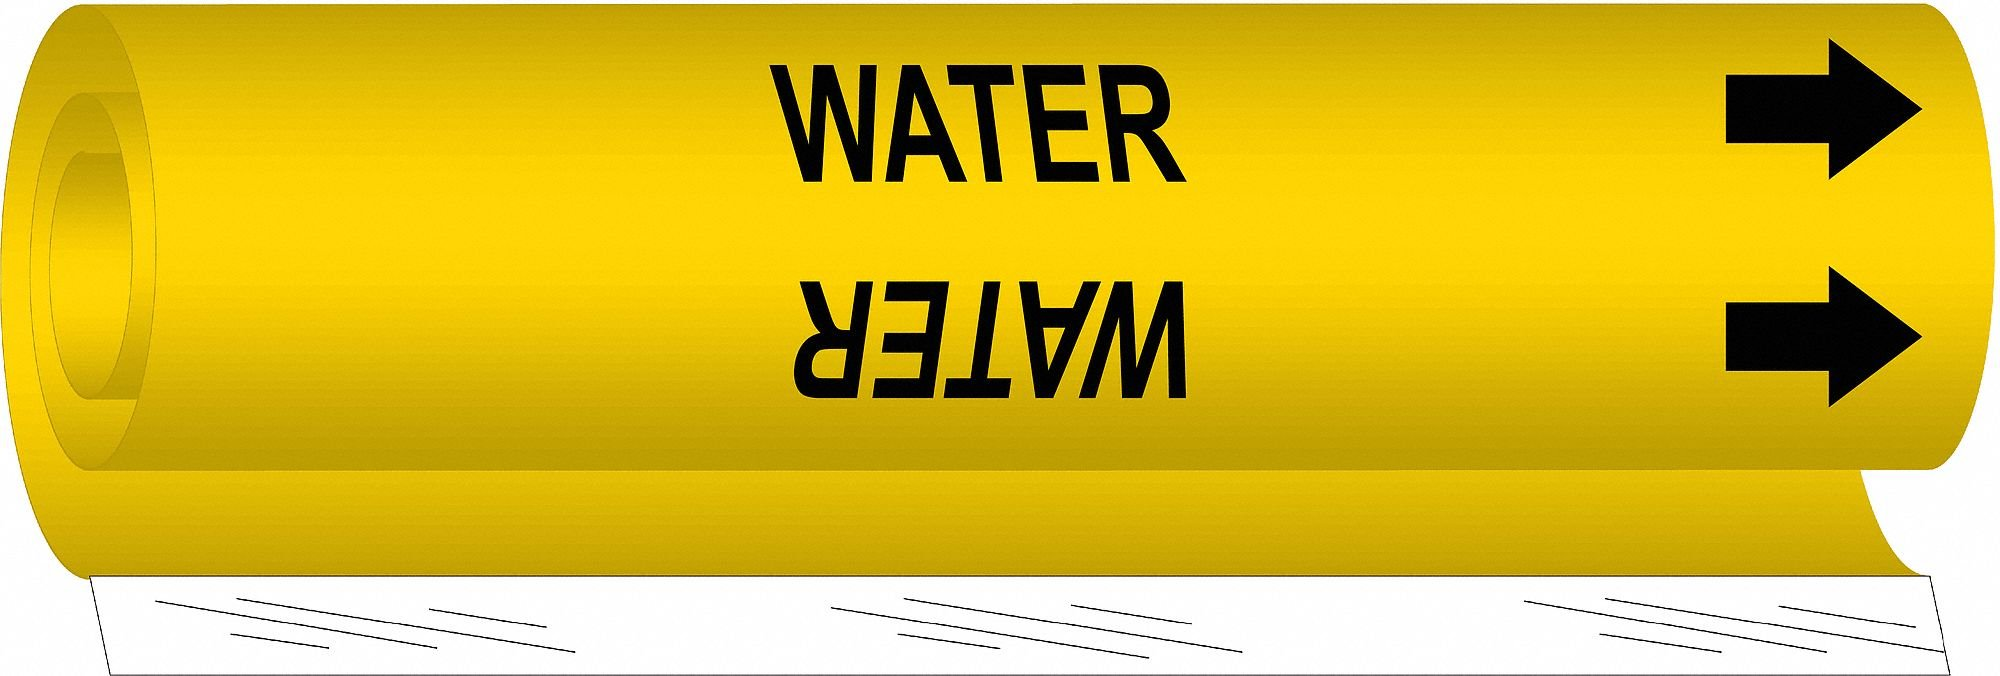 Pipe Marker,Water,Yel,1-1/2 to 2-3/8 In